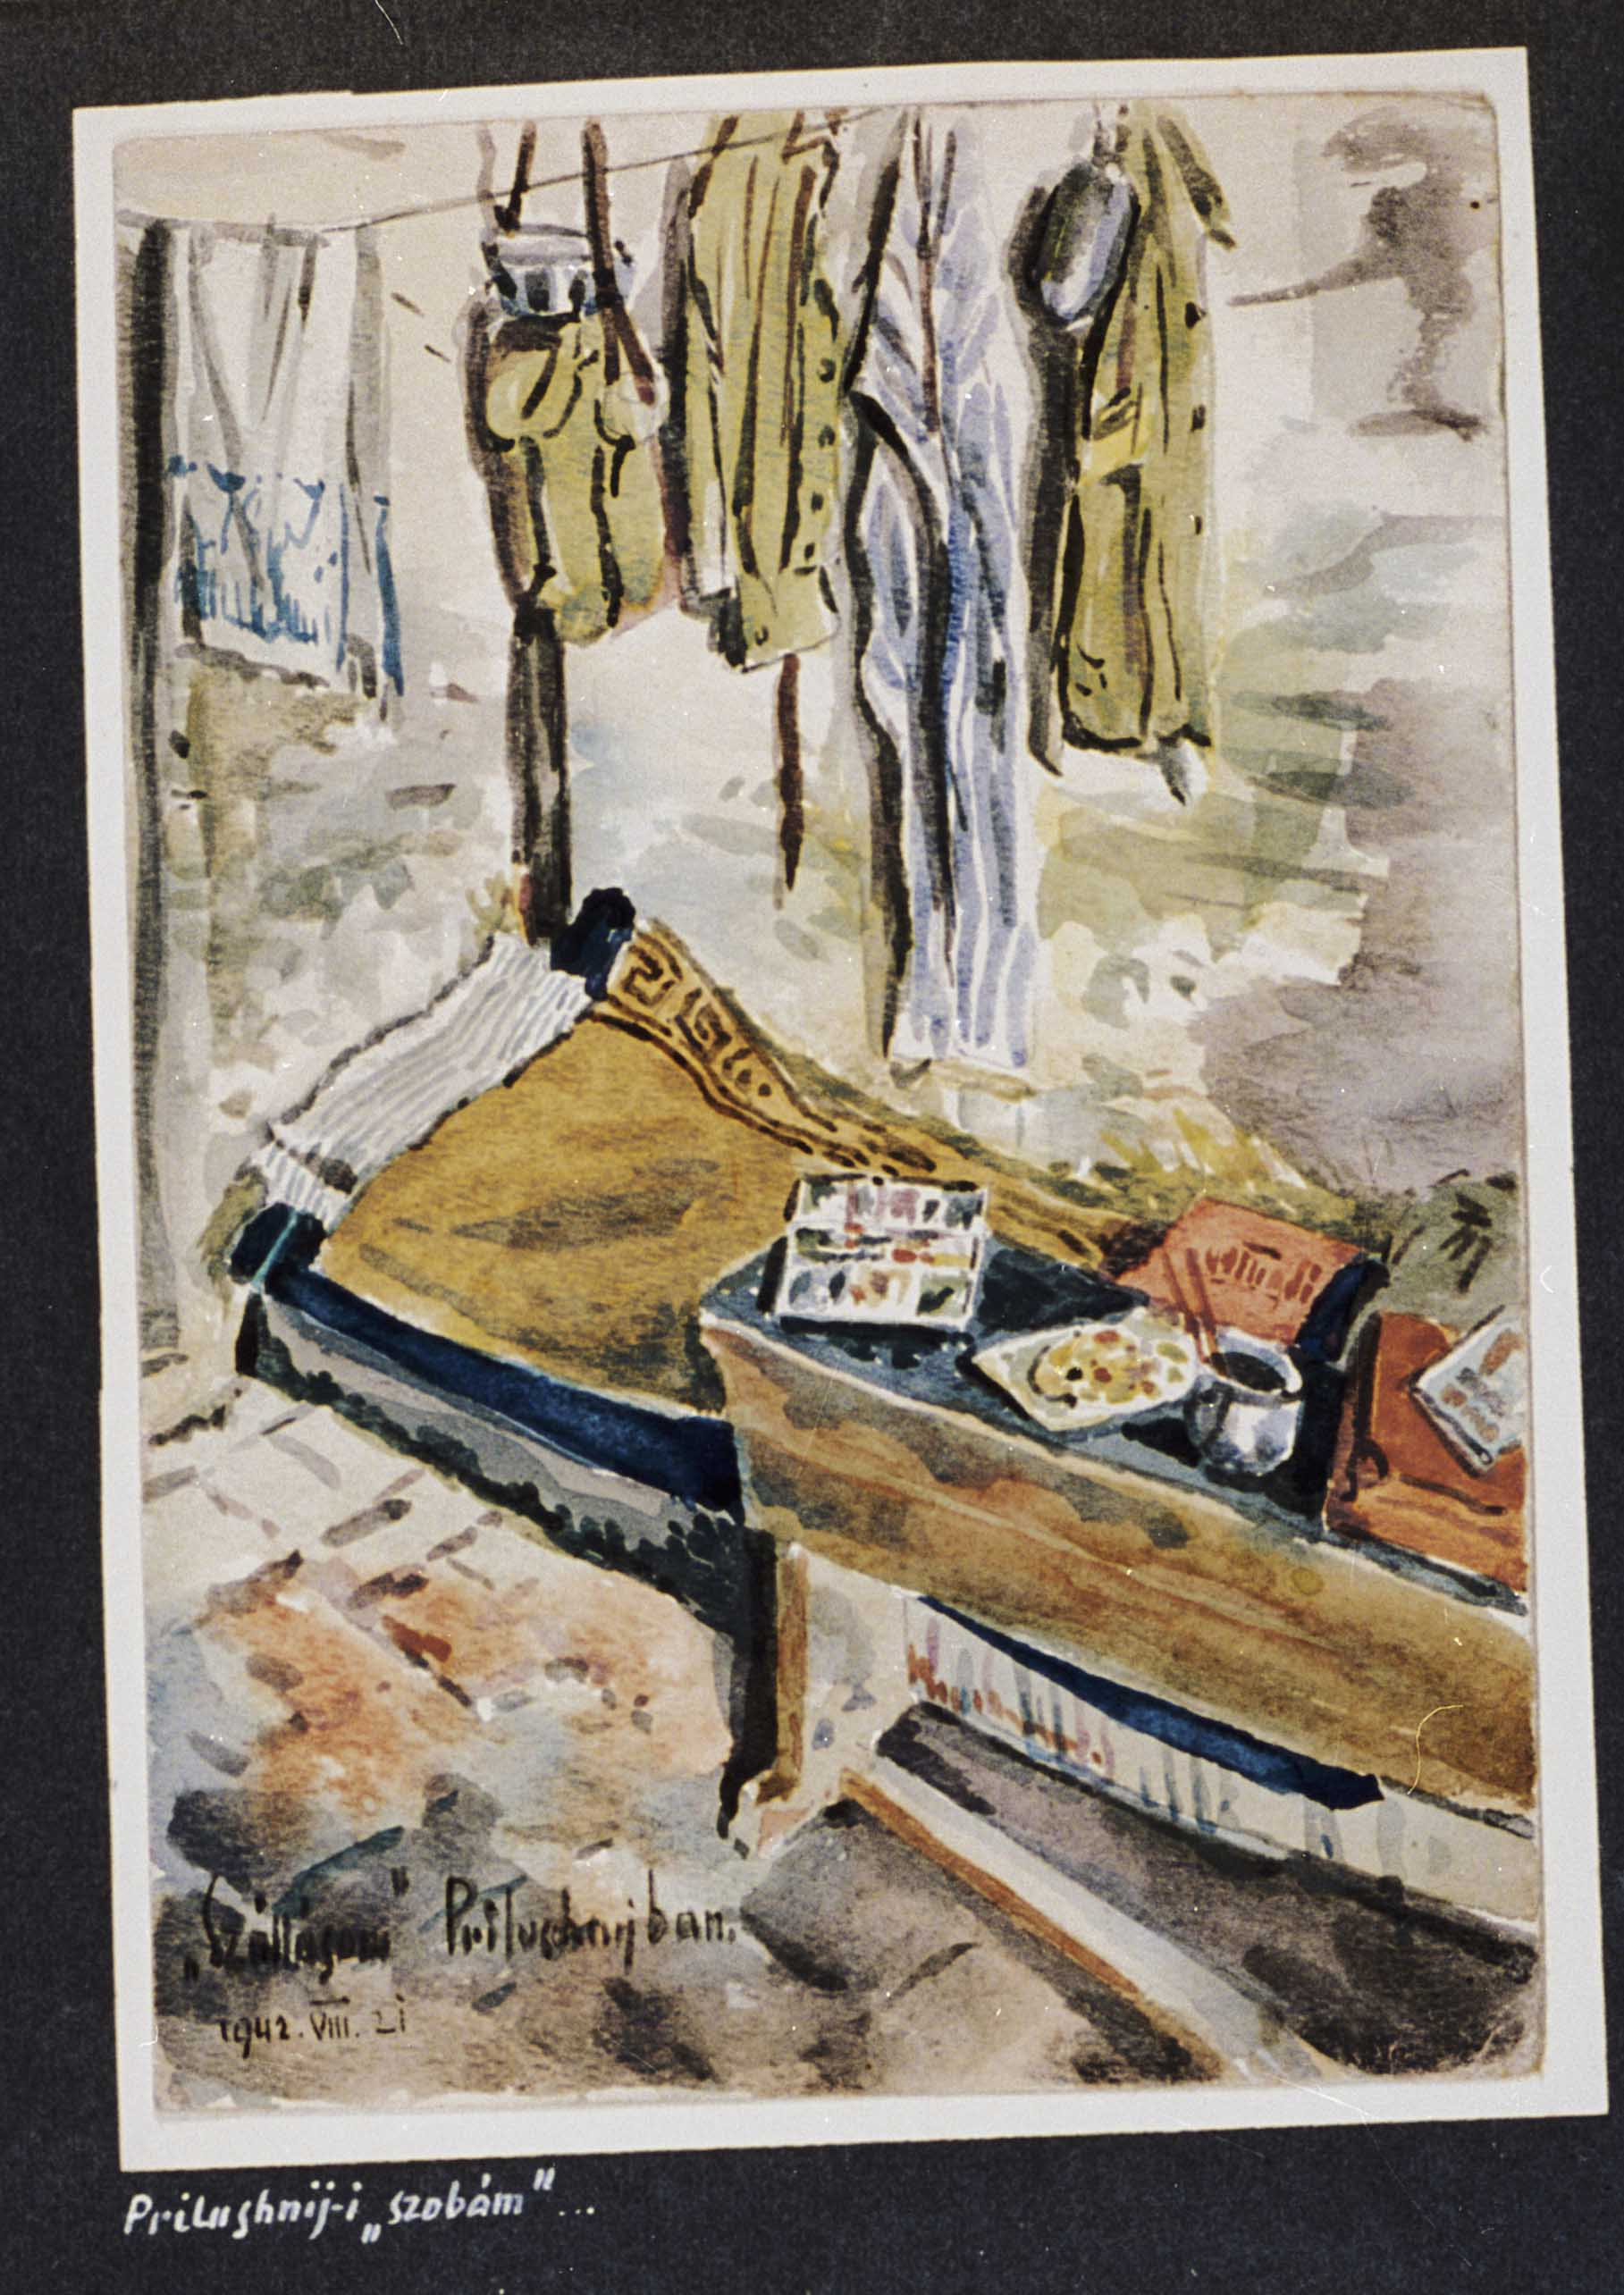 Watercolor painting showing Beifeld's lodgings while in Prilushniy on August 21, 1942.  While his accommodations are spare, he is yet living a civilized existence five months before the Soviet counteroffensive. His clothing is hung up; his laundry is drying on a clothesline; his artistic supplies are laid out in an orderly way on his bed. [Photograph #58052]